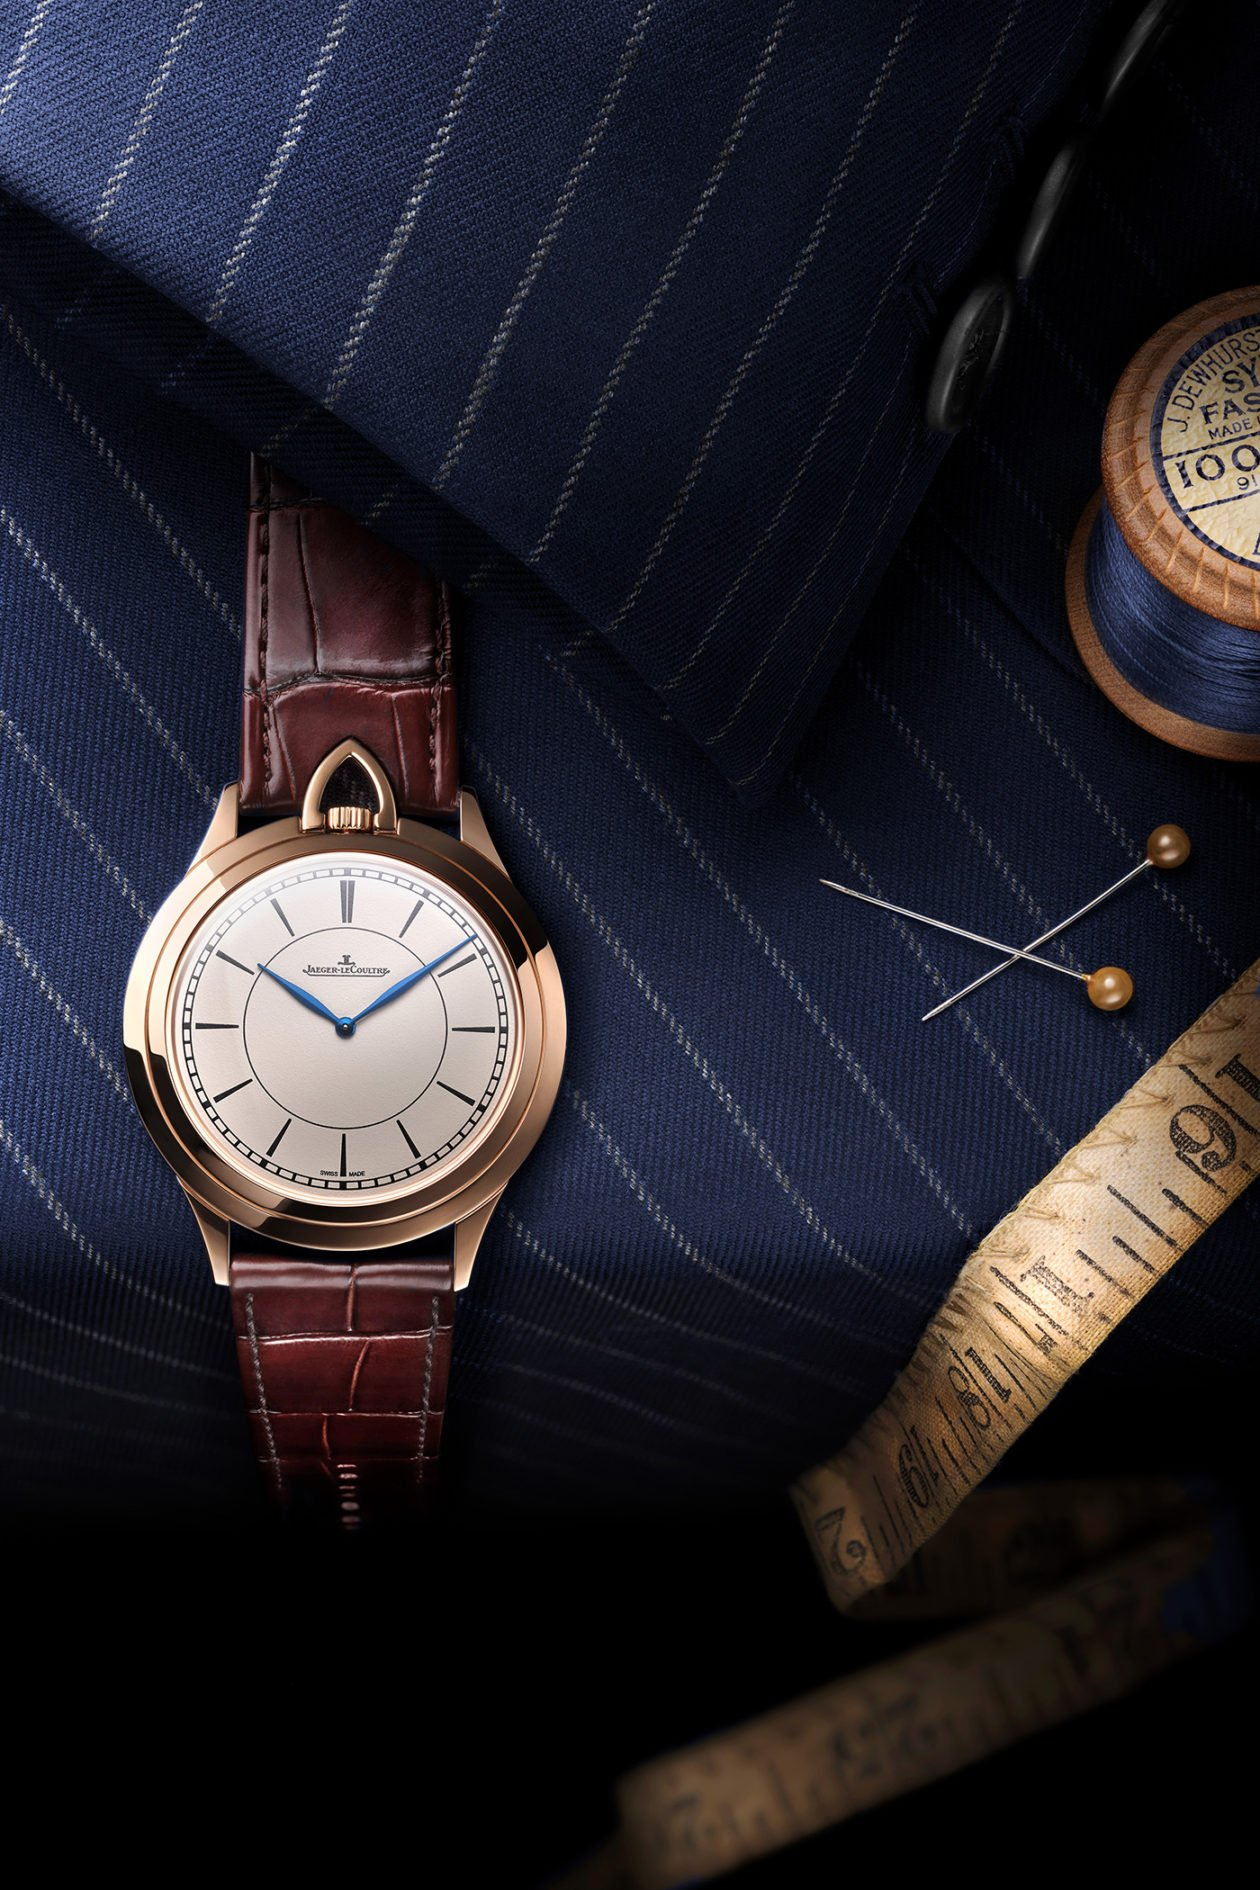 Jaeger-LeCoultre Master Ultra Thin KINGSMAN Knife watch